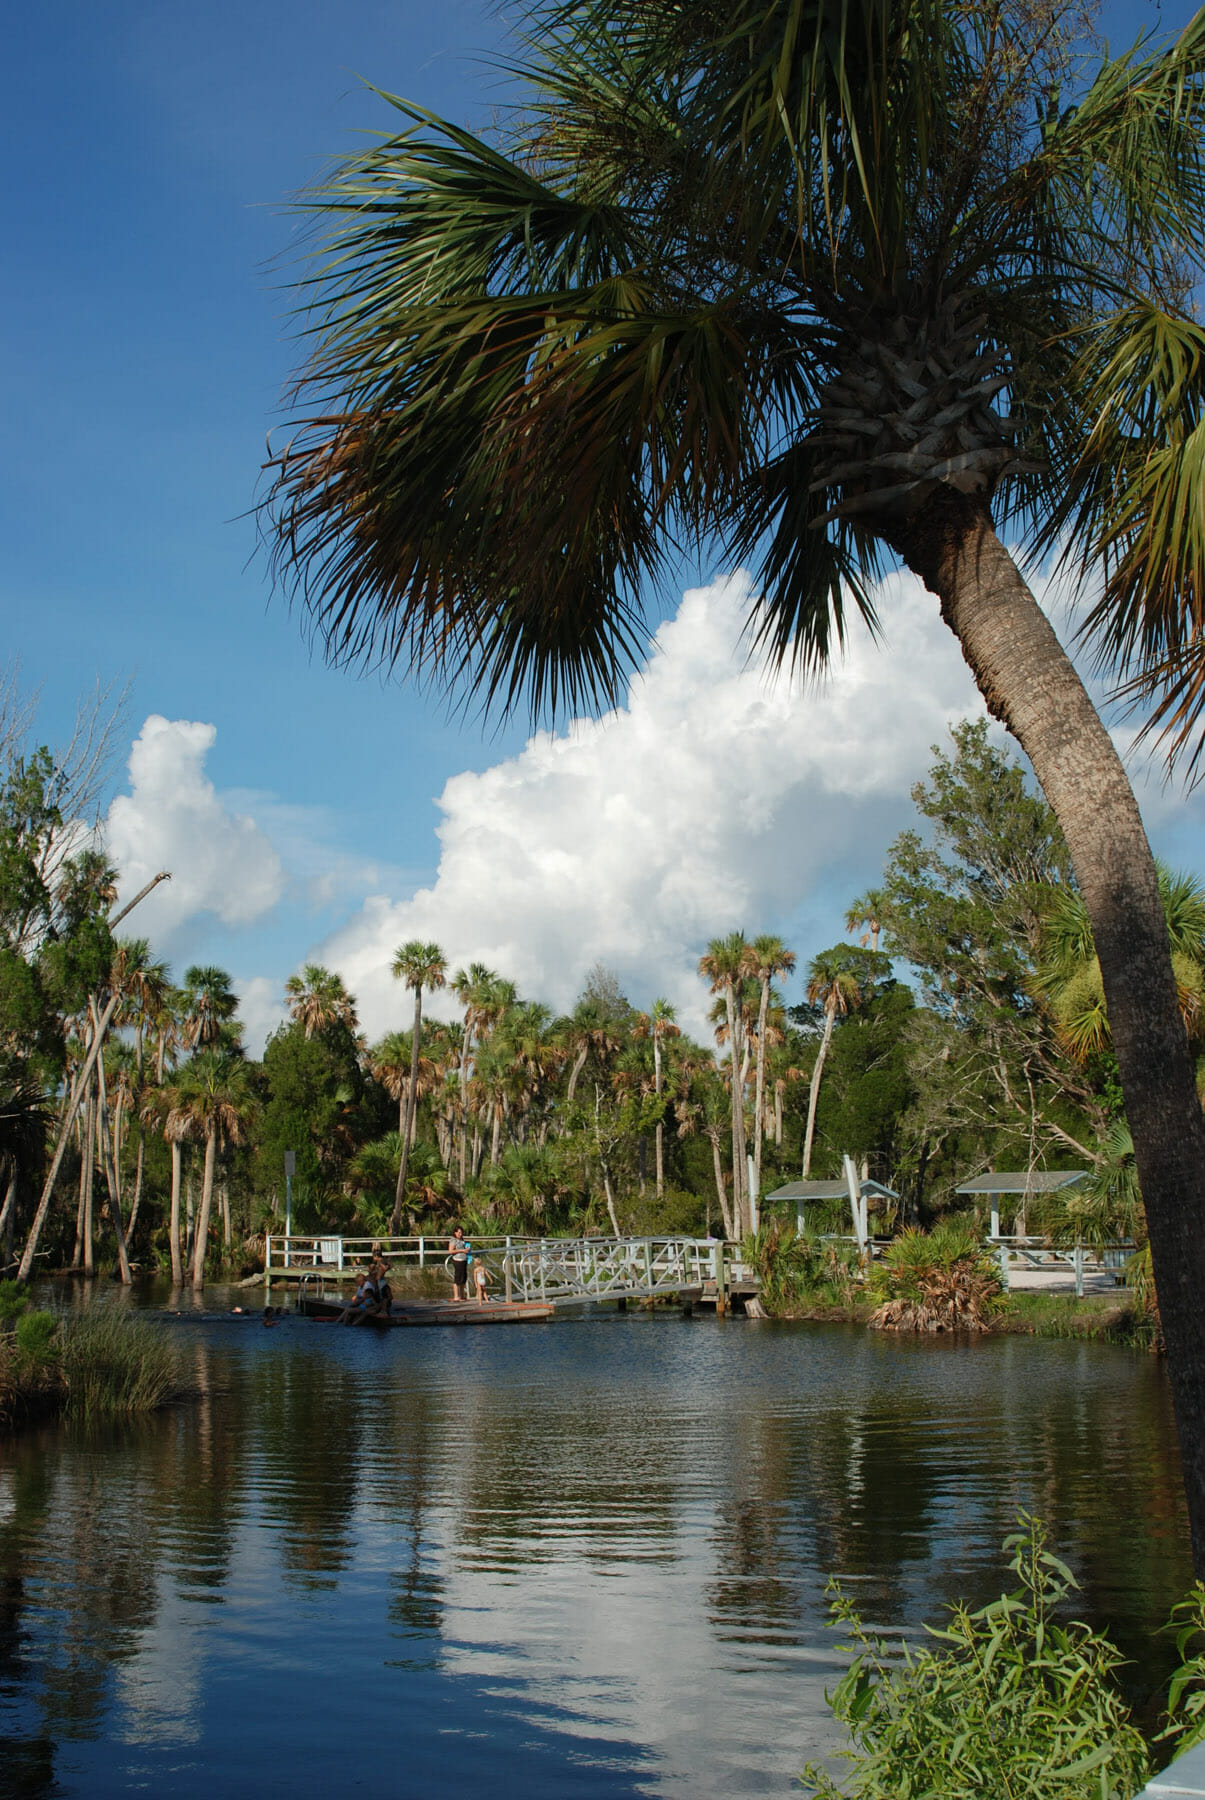 There is no beach at Hernando Beach except a man-made one along Jenkins Creek. But this coastal community offers paddling, swimming, hiking, and biking along its trails.